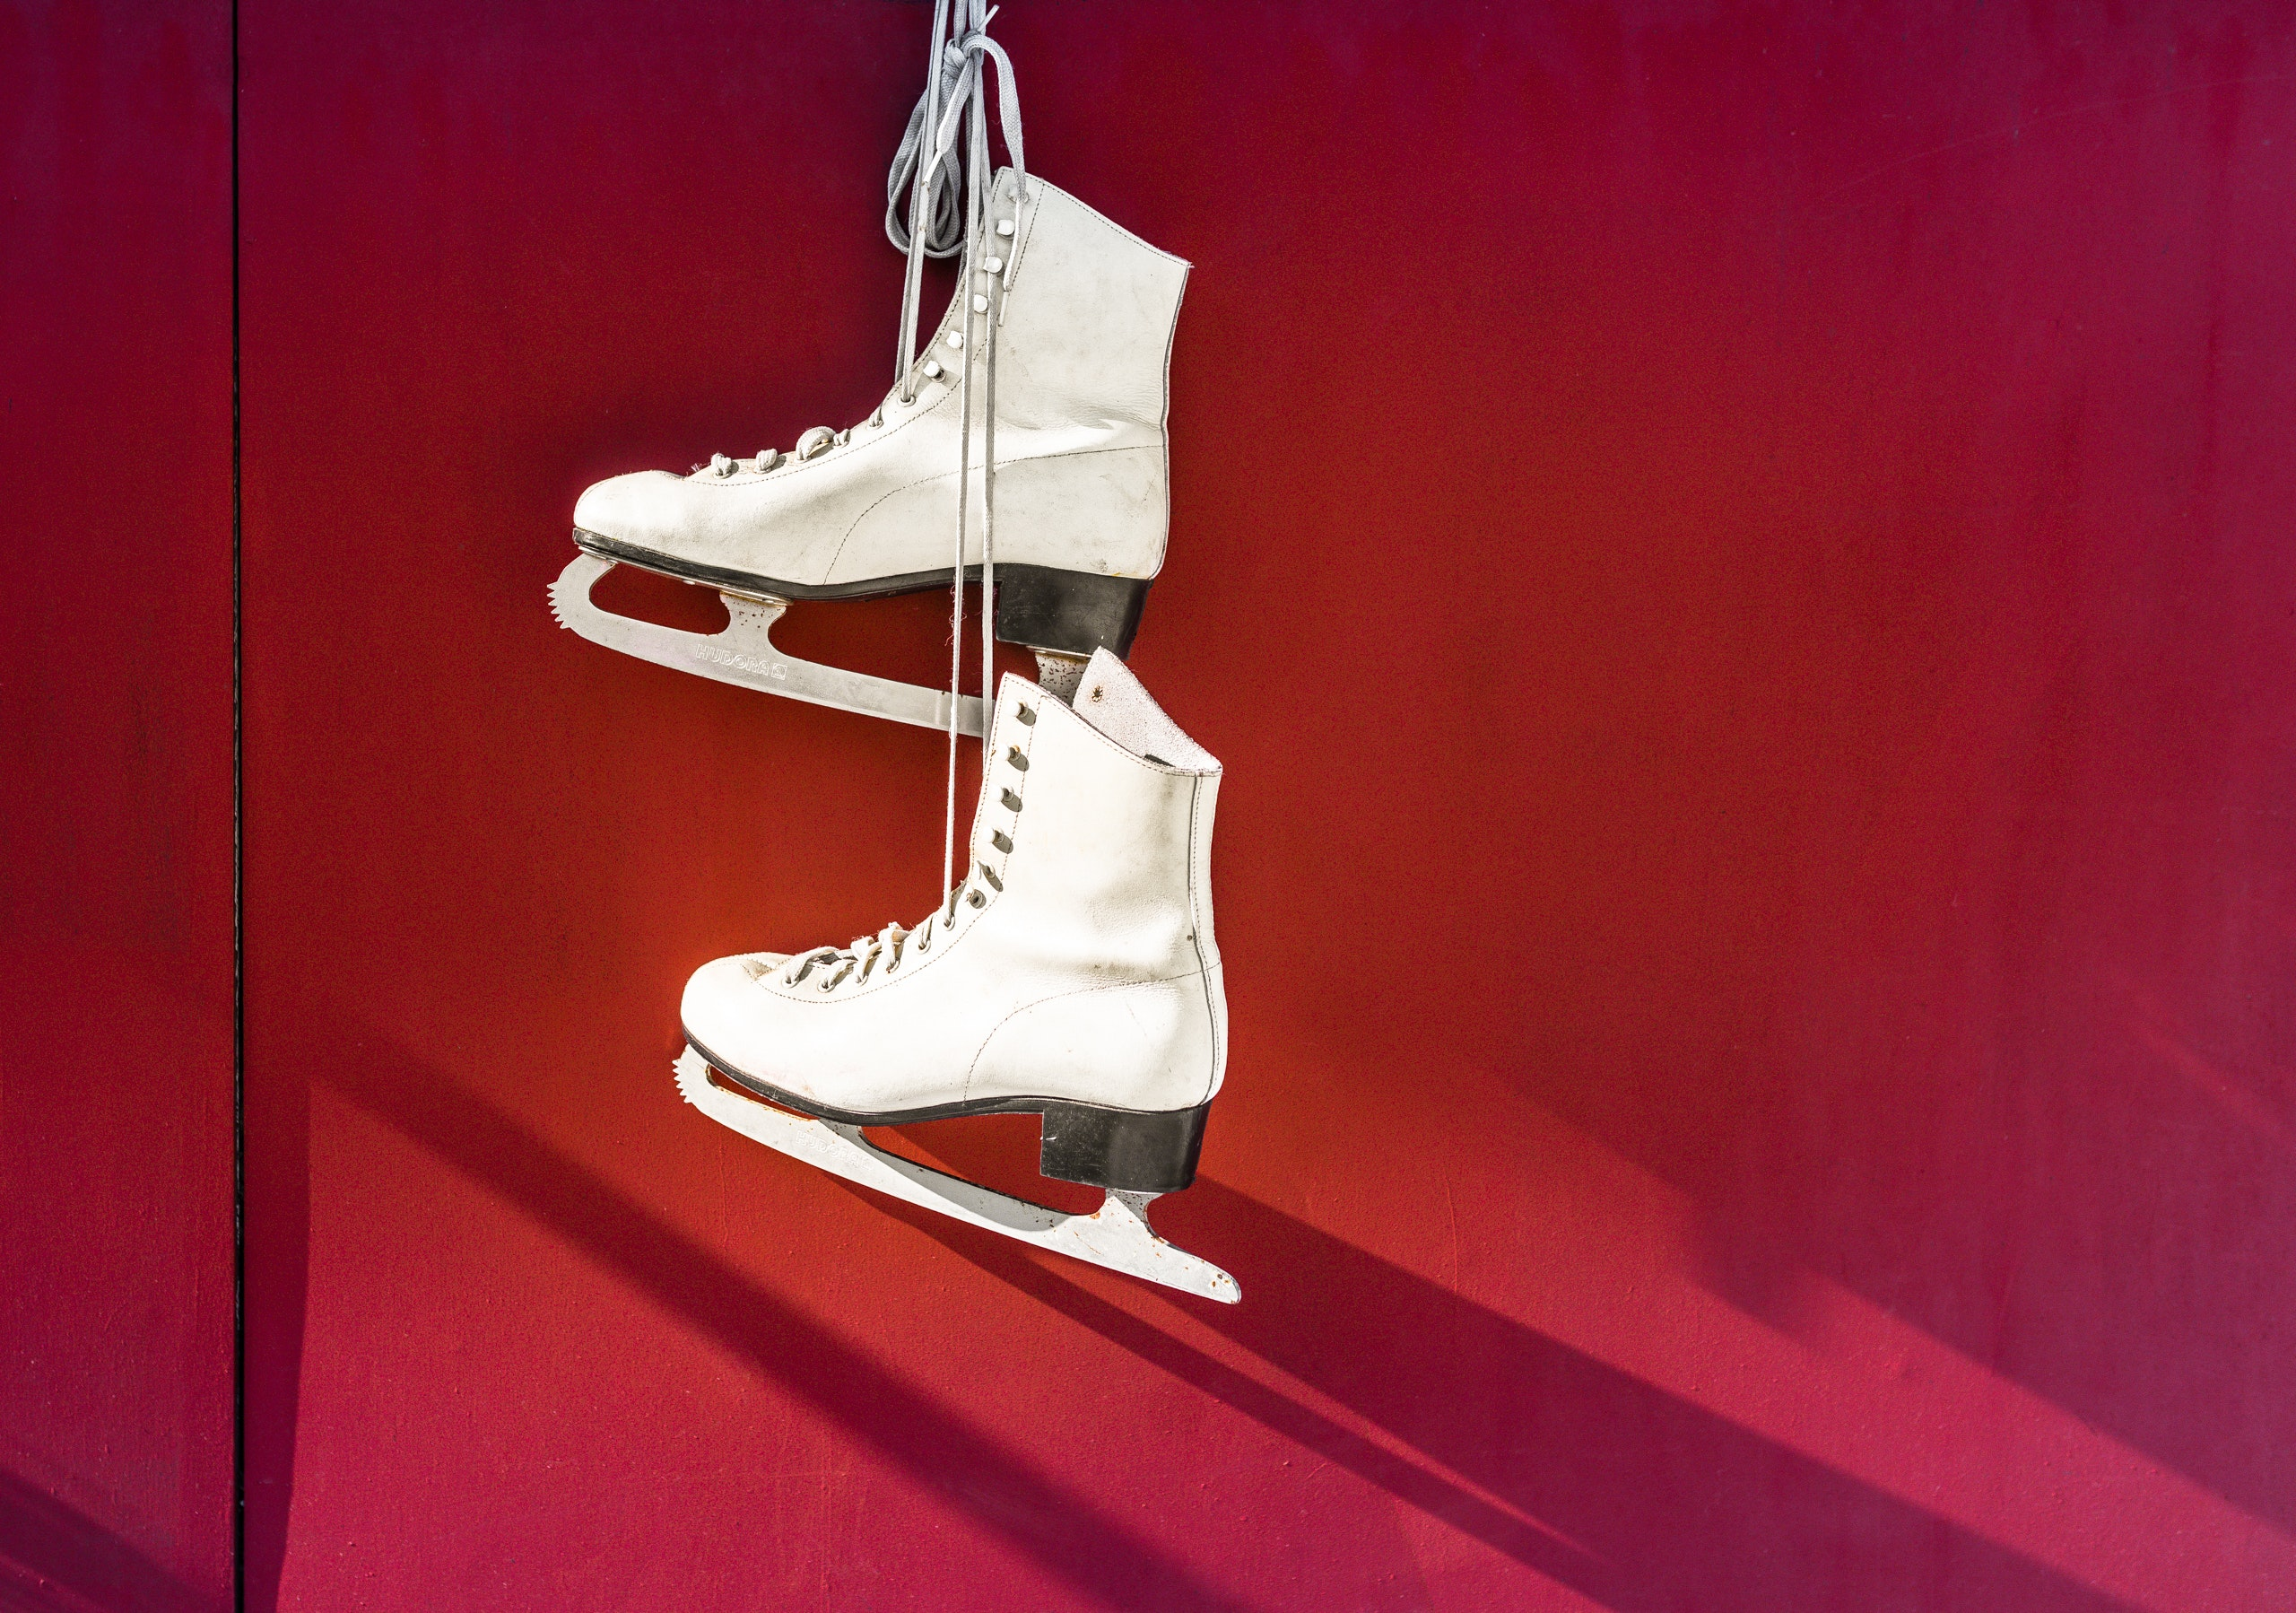 White ice skates against a red background